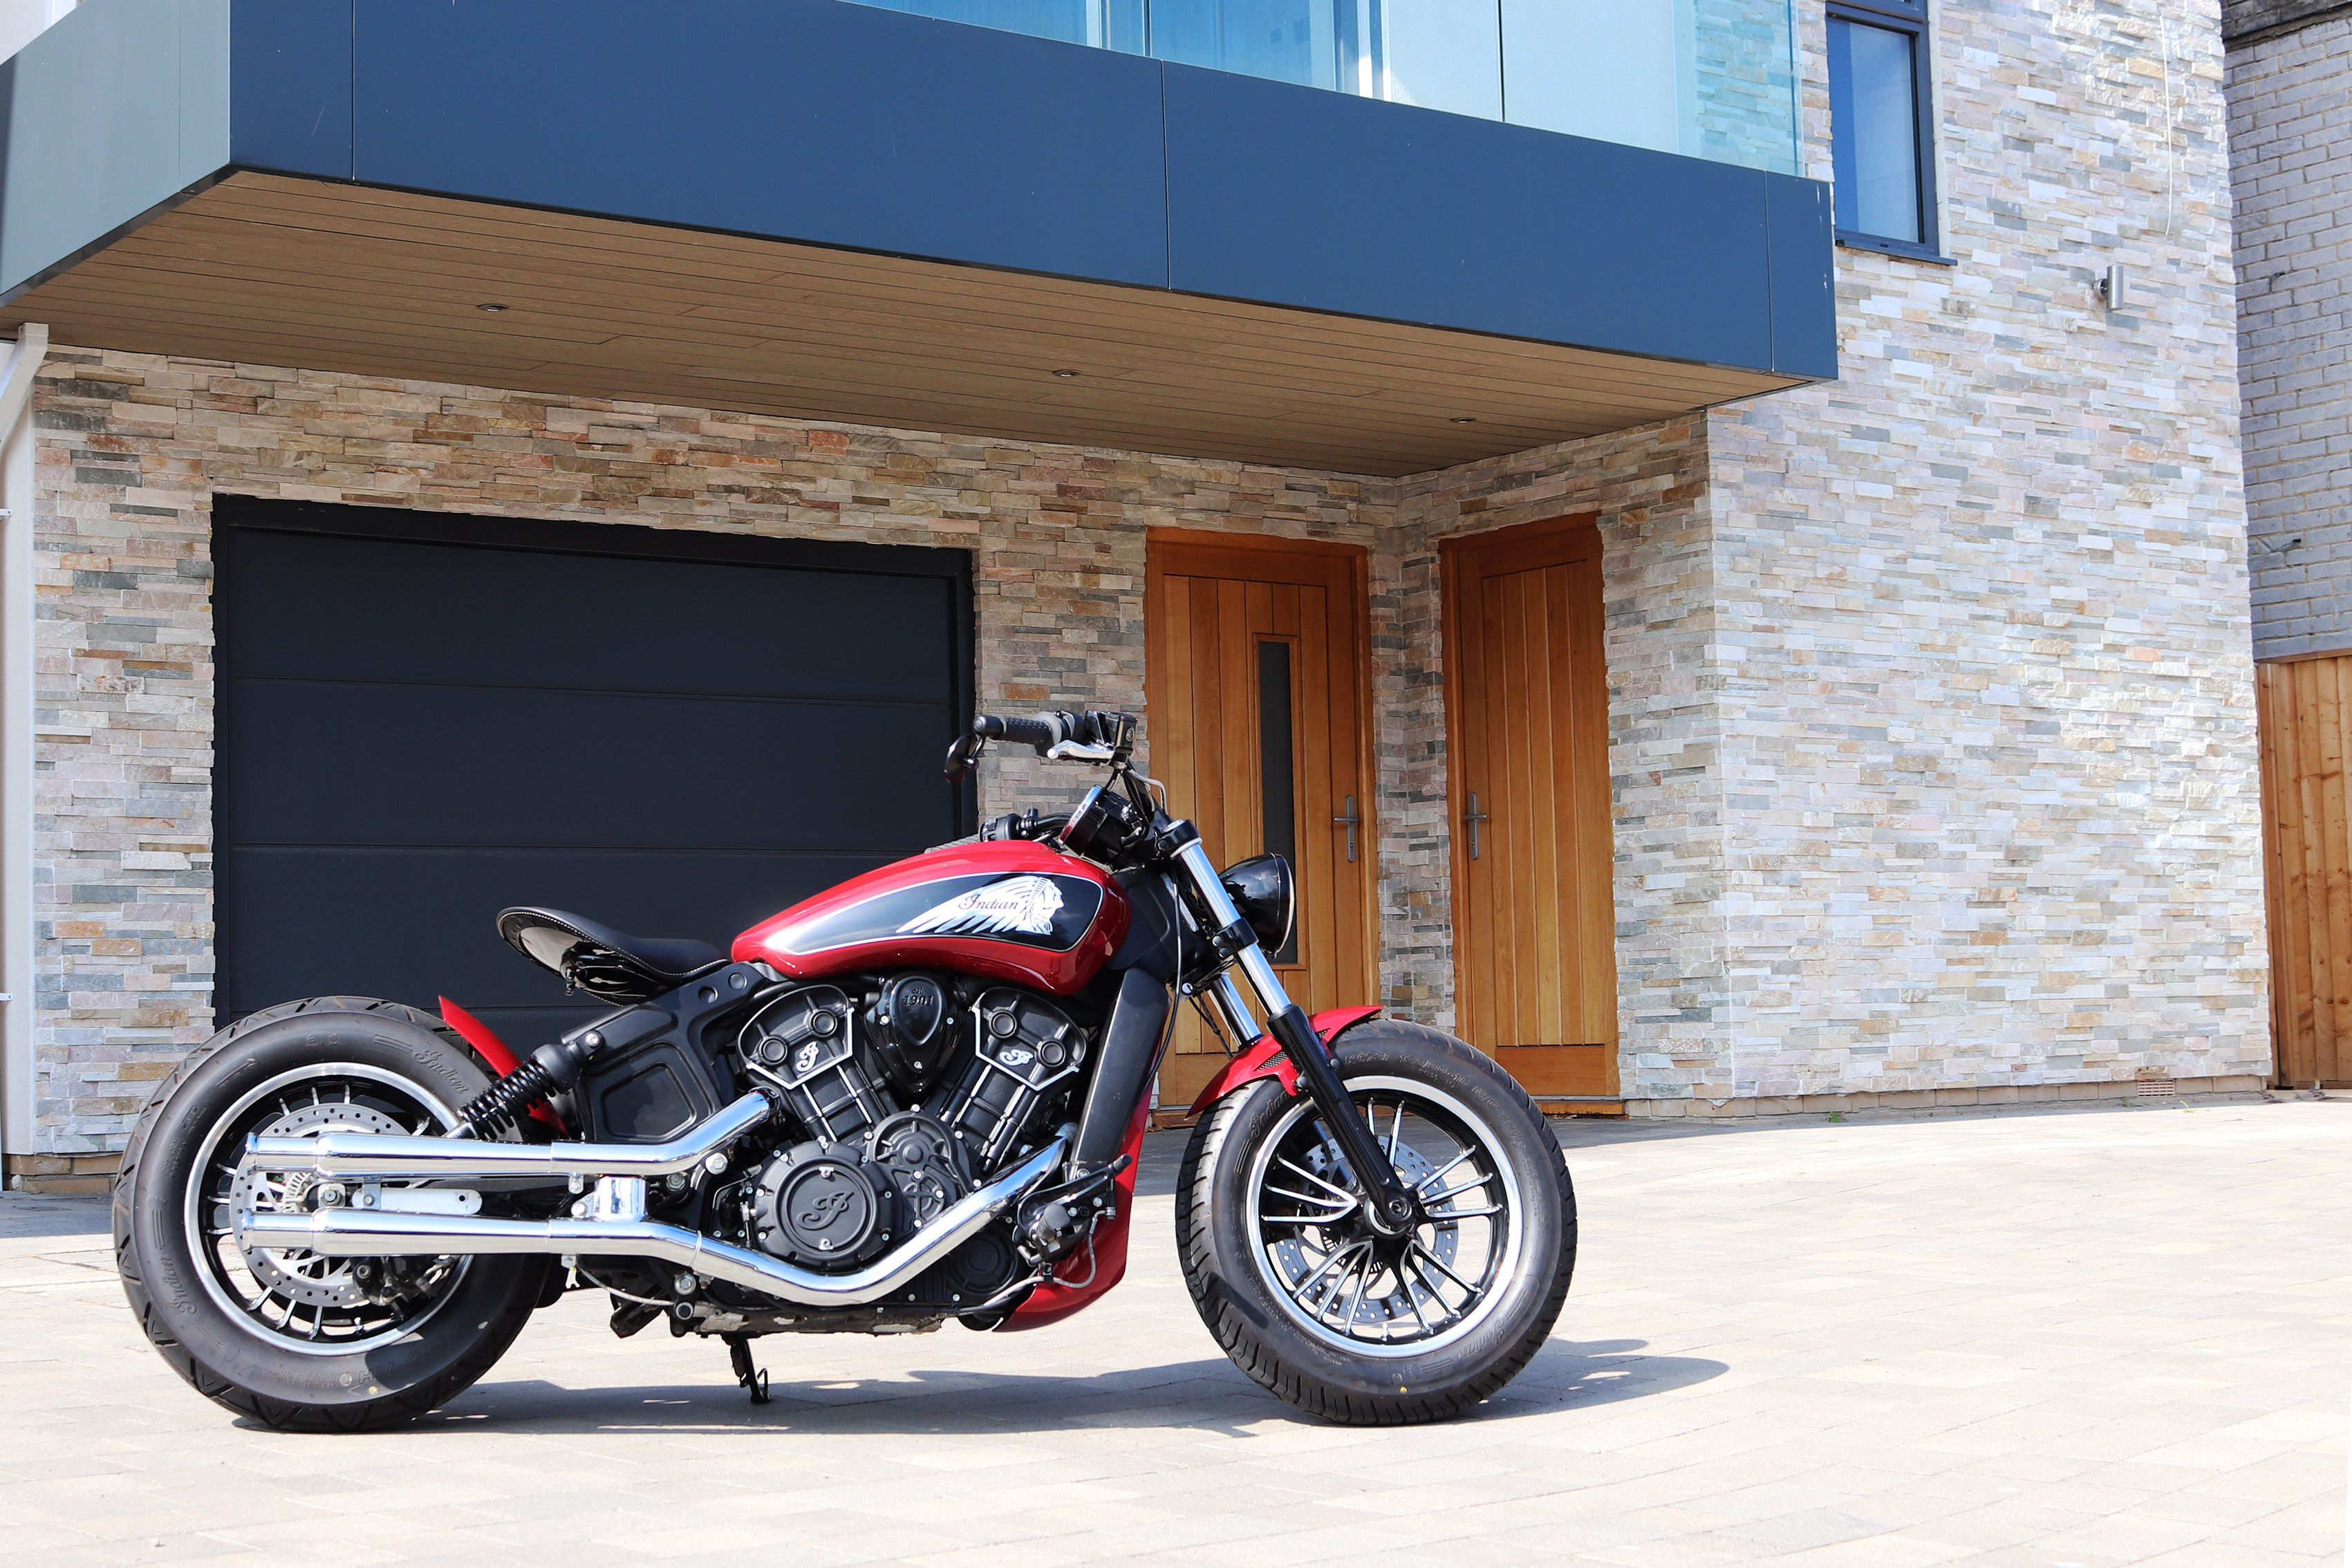 Custom Indian Motorcycle For Sale >> Custom Indian Scout Motorcycle By Moore Speed Racing Poole